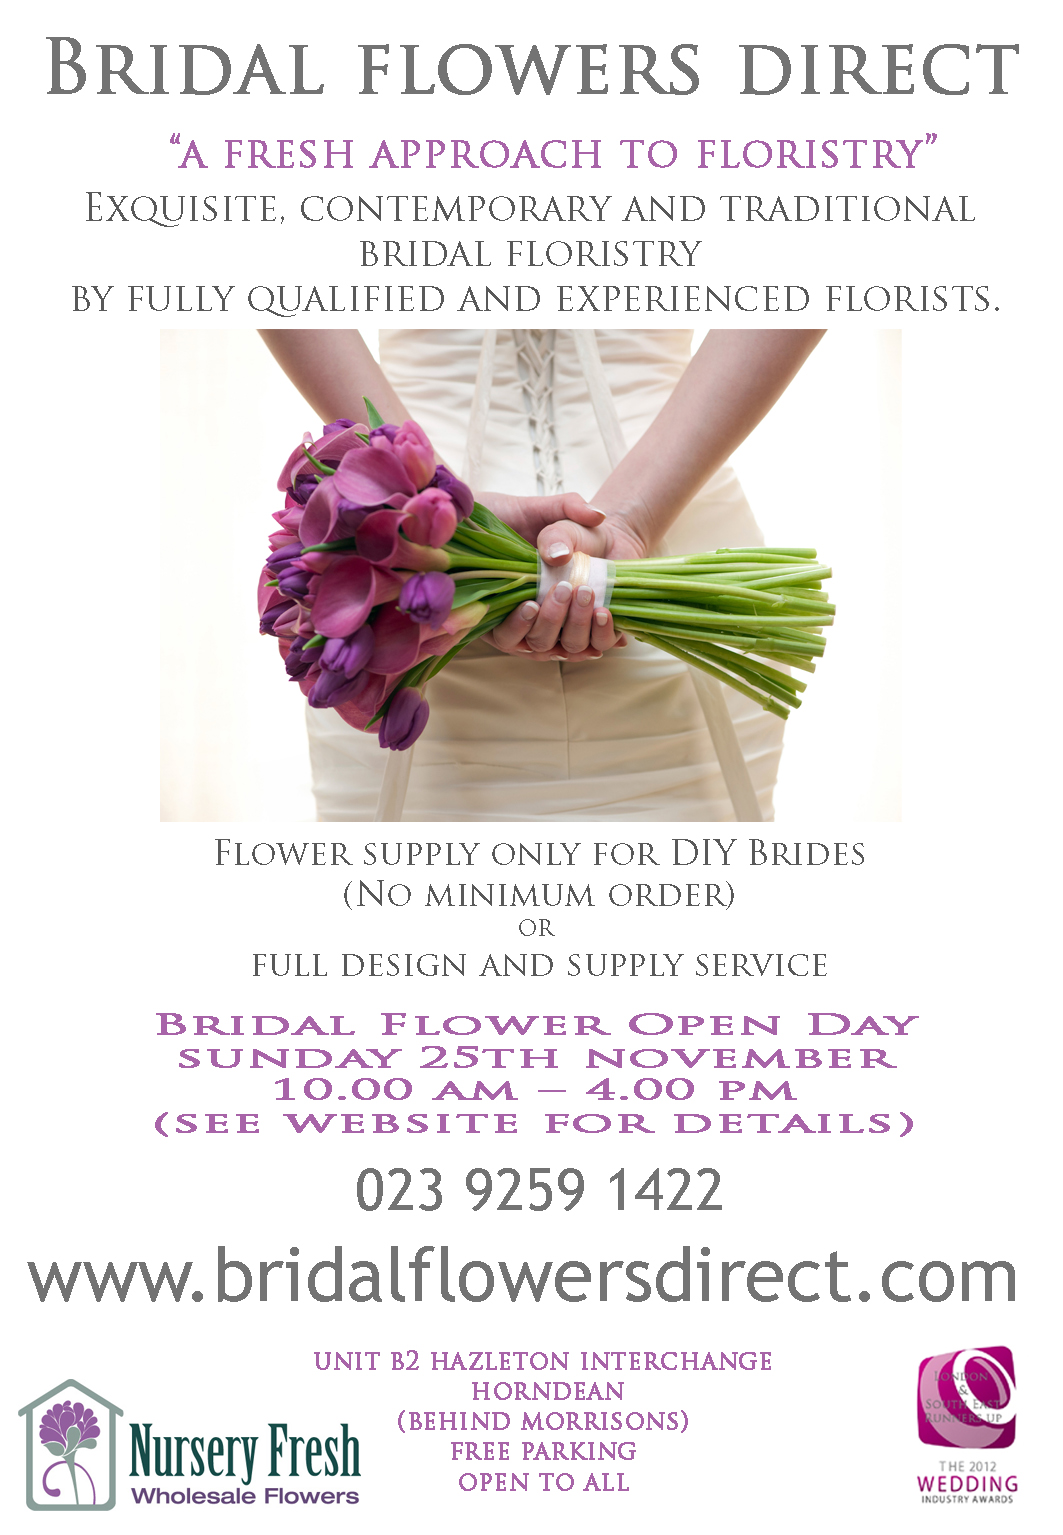 Bridal Flower Open Day Sunday 25th November 2012 – Nursery Fresh Ltd